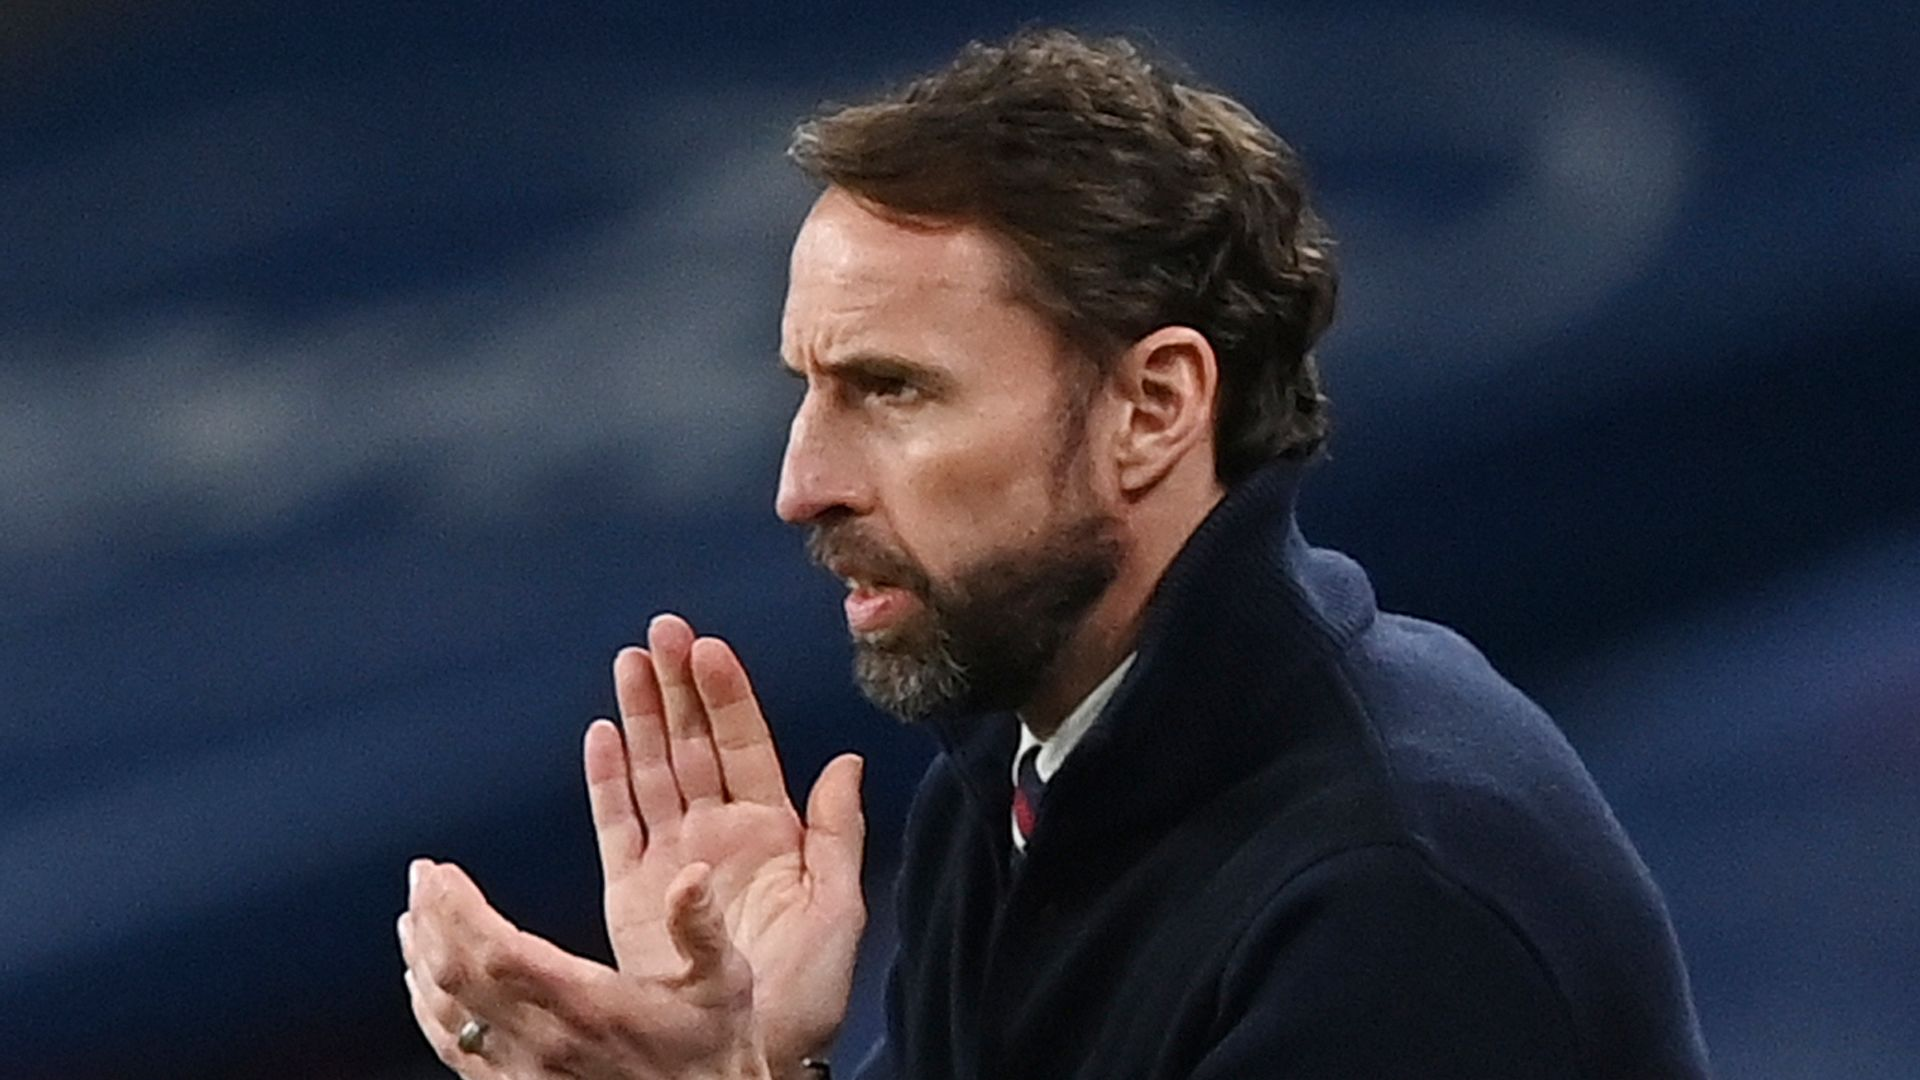 Southgate: We must do more to develop Asian talent